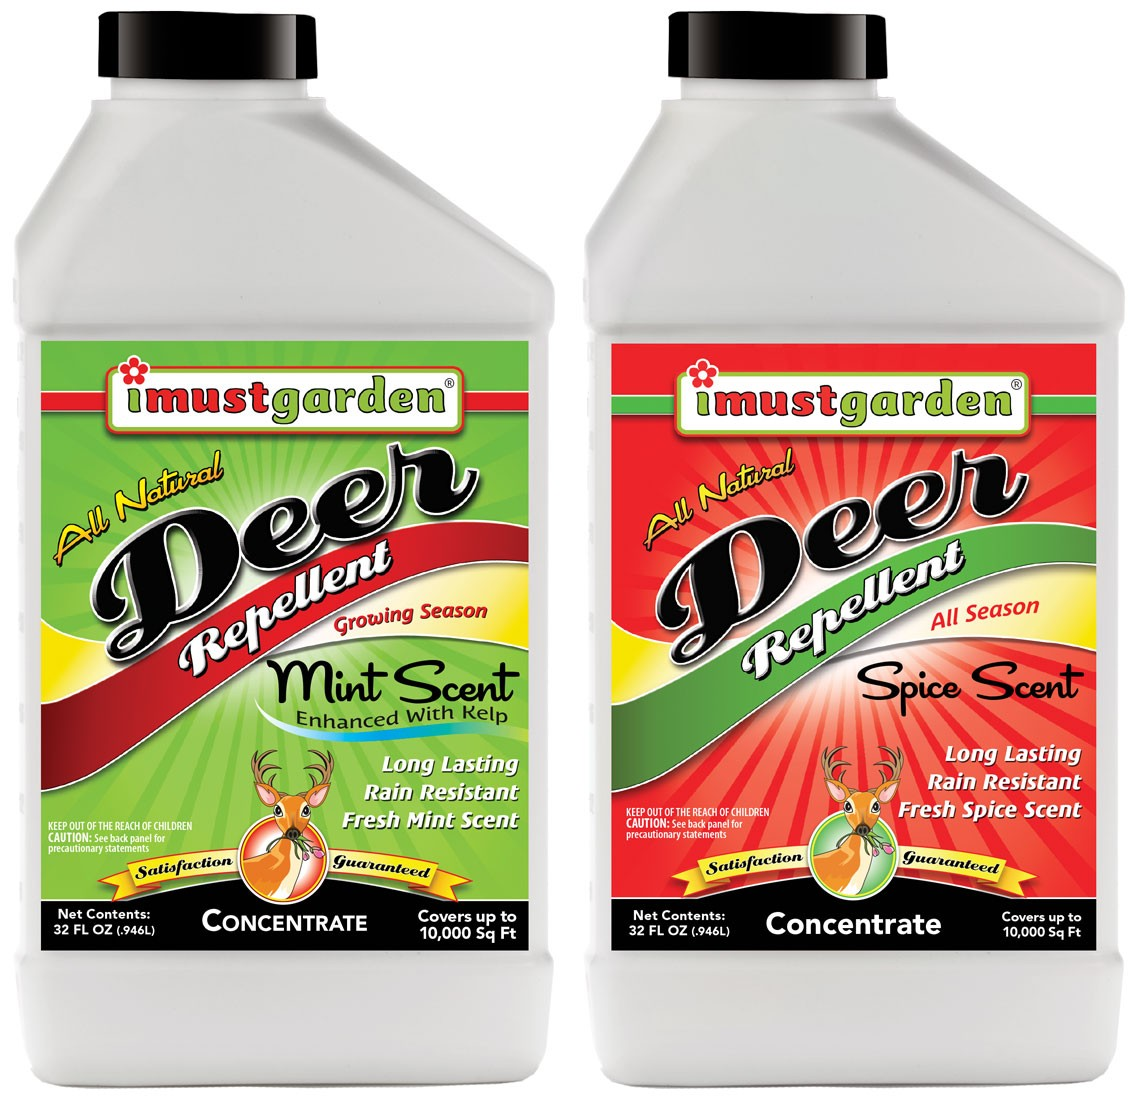 (32 oz) Deer Concentrate Duo 32oz, One 32oz Mint Scent Concentrate , One 32oz Spice Scent Concentrate